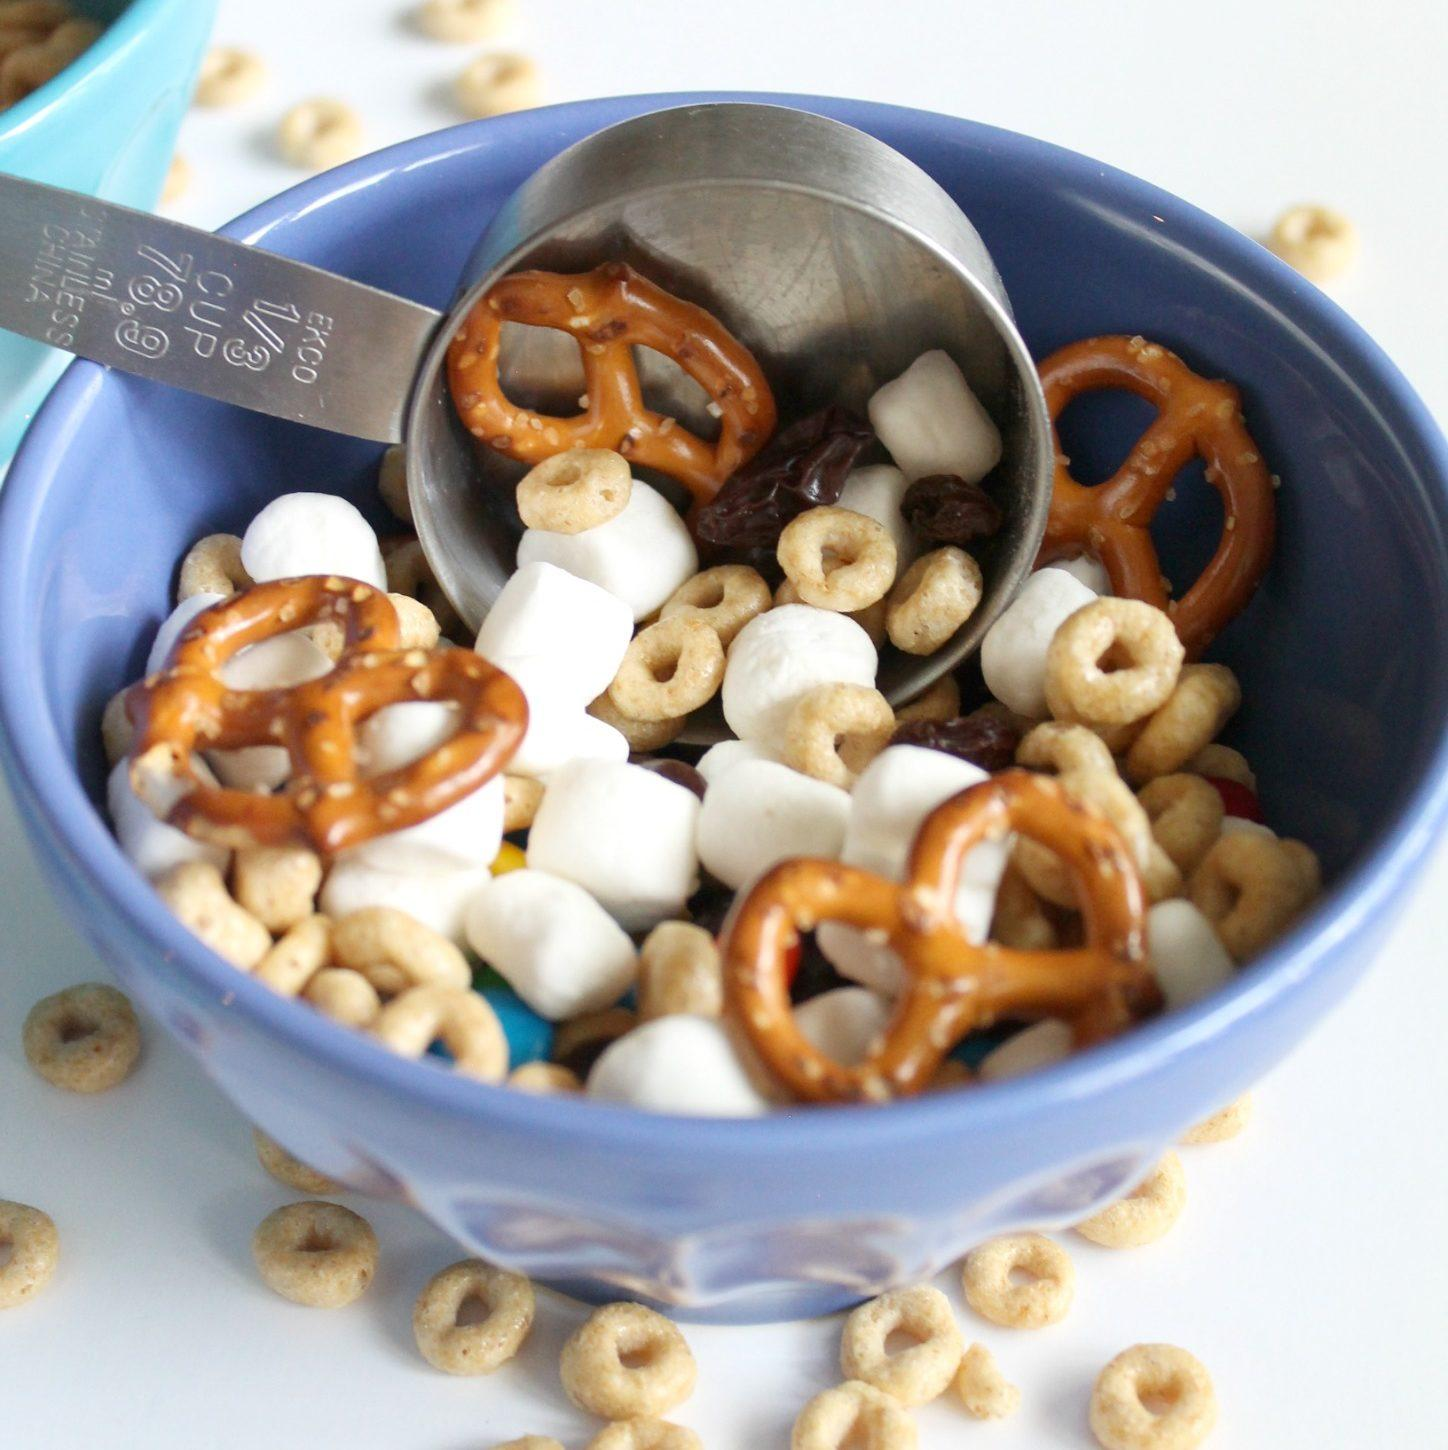 Trail mix. Try these kid-friendly recipes. They are great tasting and fun to make. Get kids in the kitchen by making these recipes together!